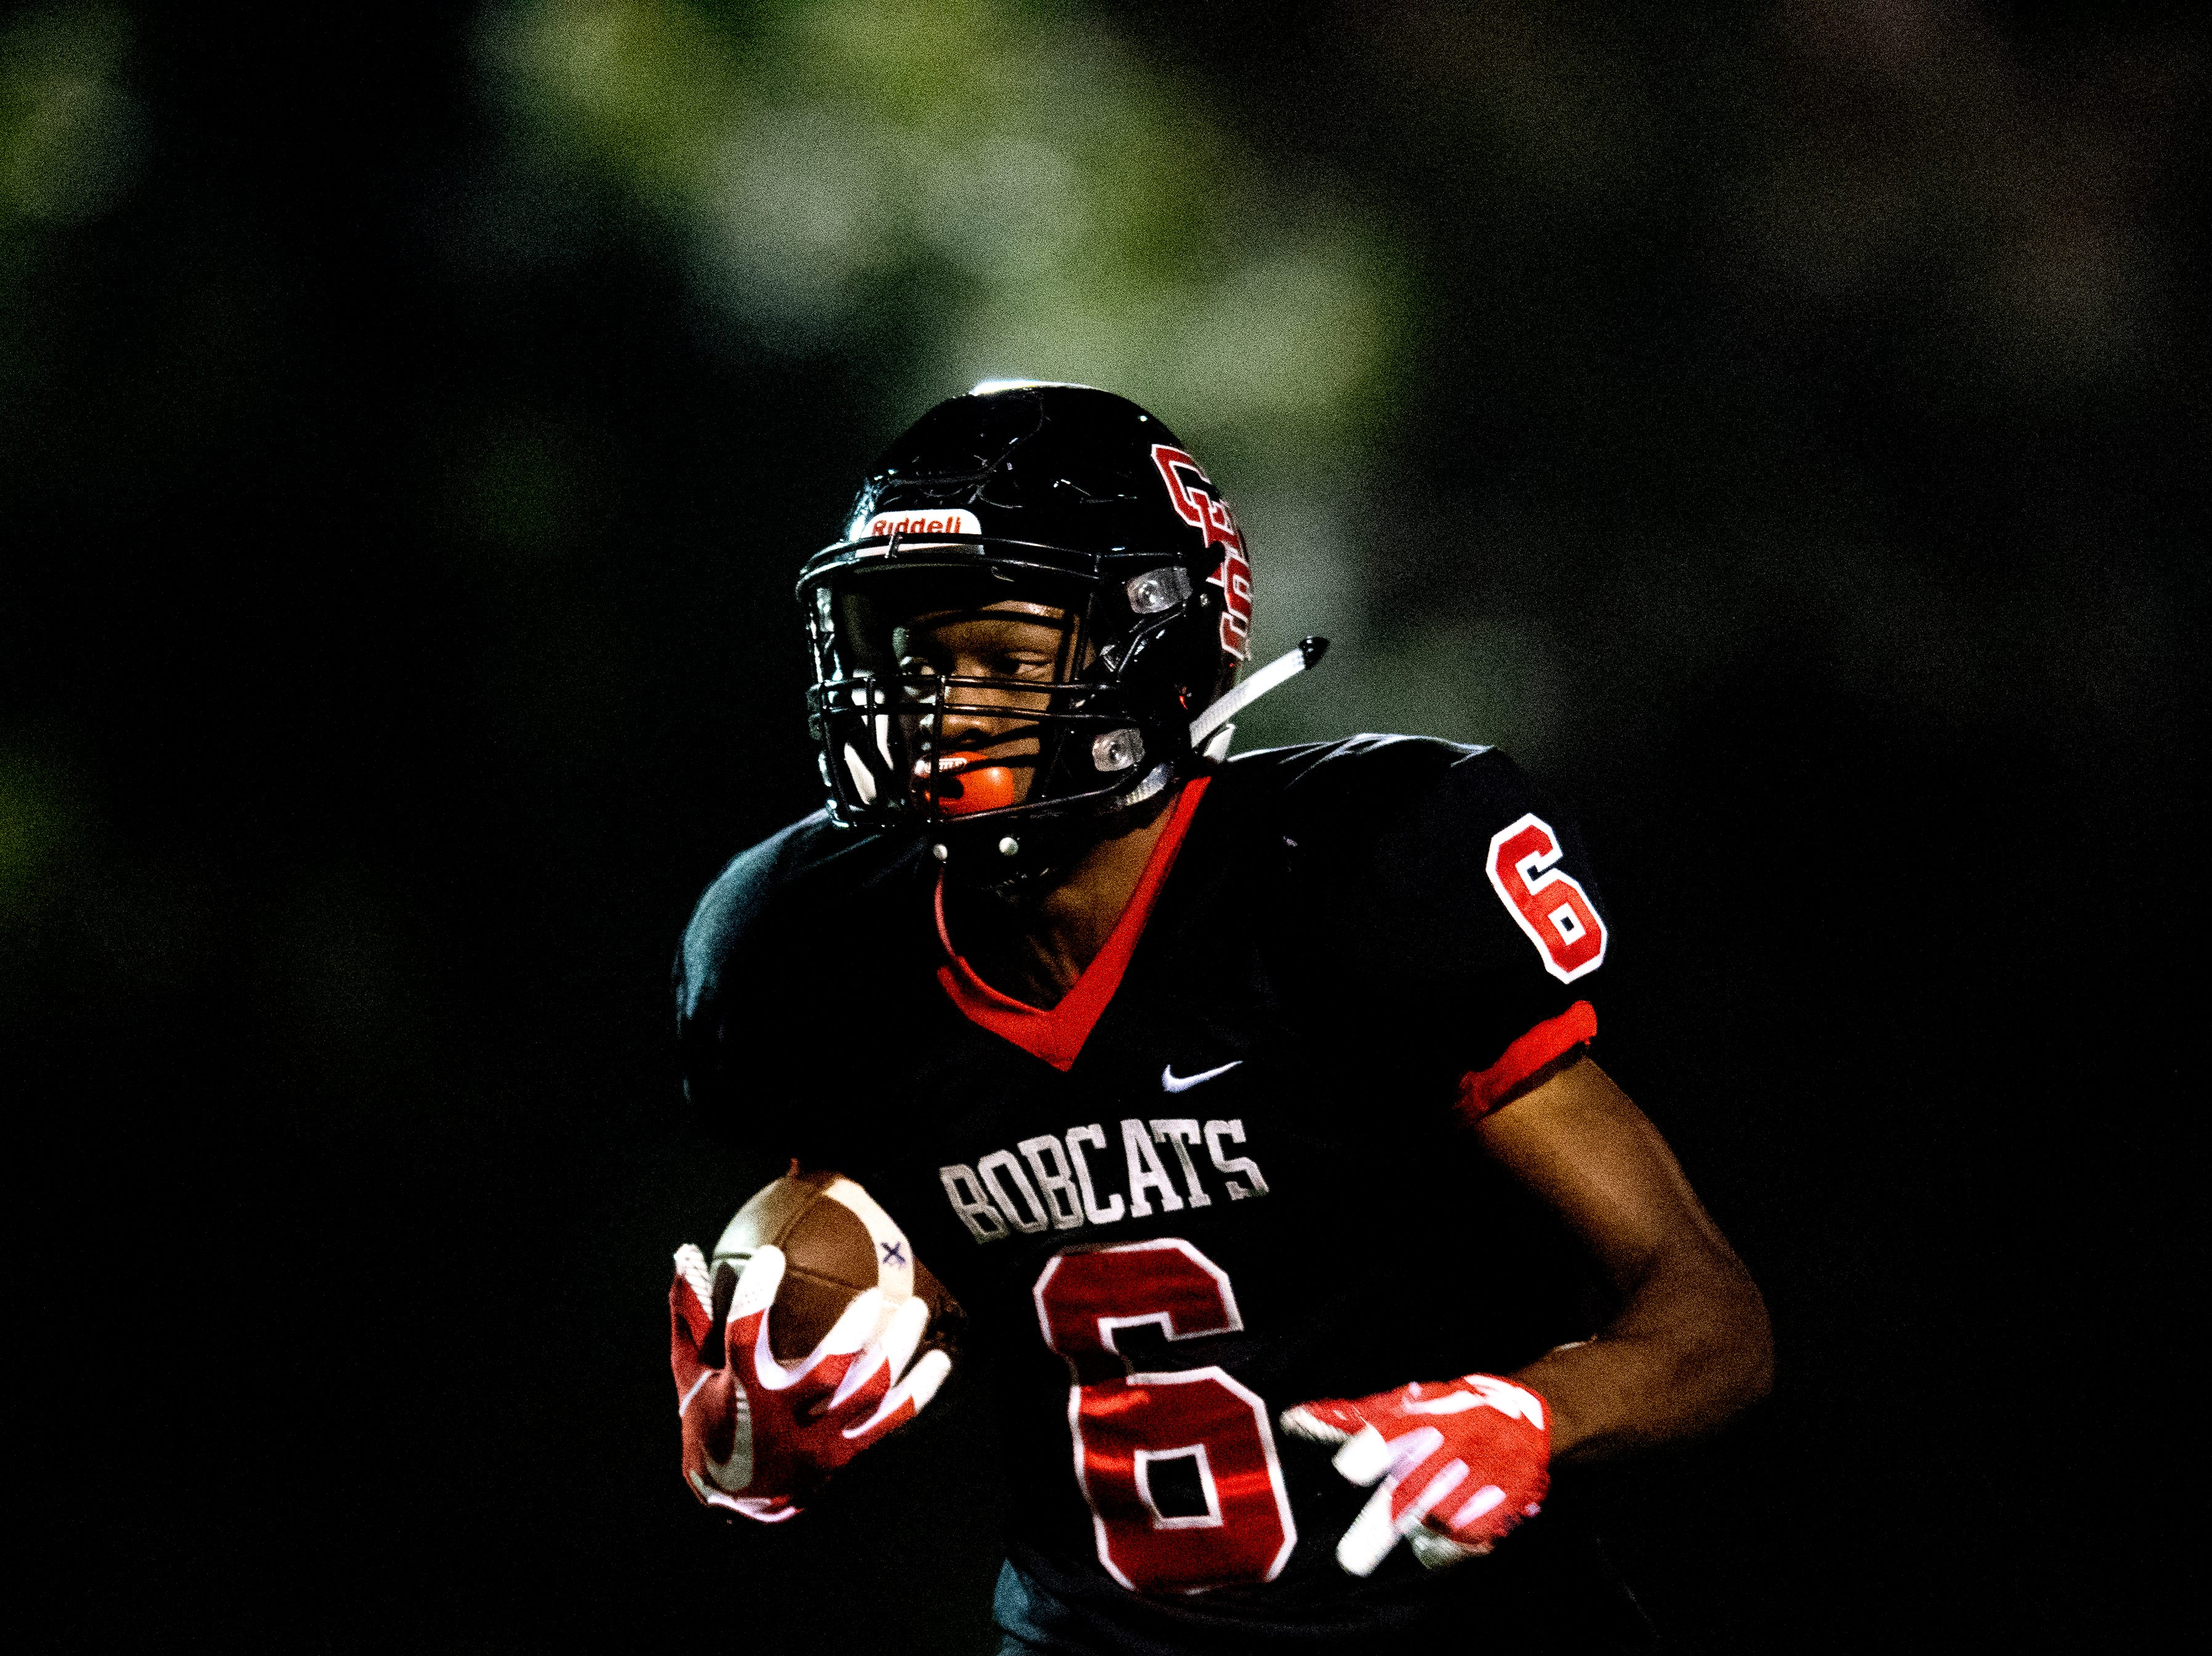 Central's Demetrien Johnson (6) runs with the ball during a football game between Central and South-Doyle at Central High School in Knoxville, Tennessee on Friday, October 19, 2018.